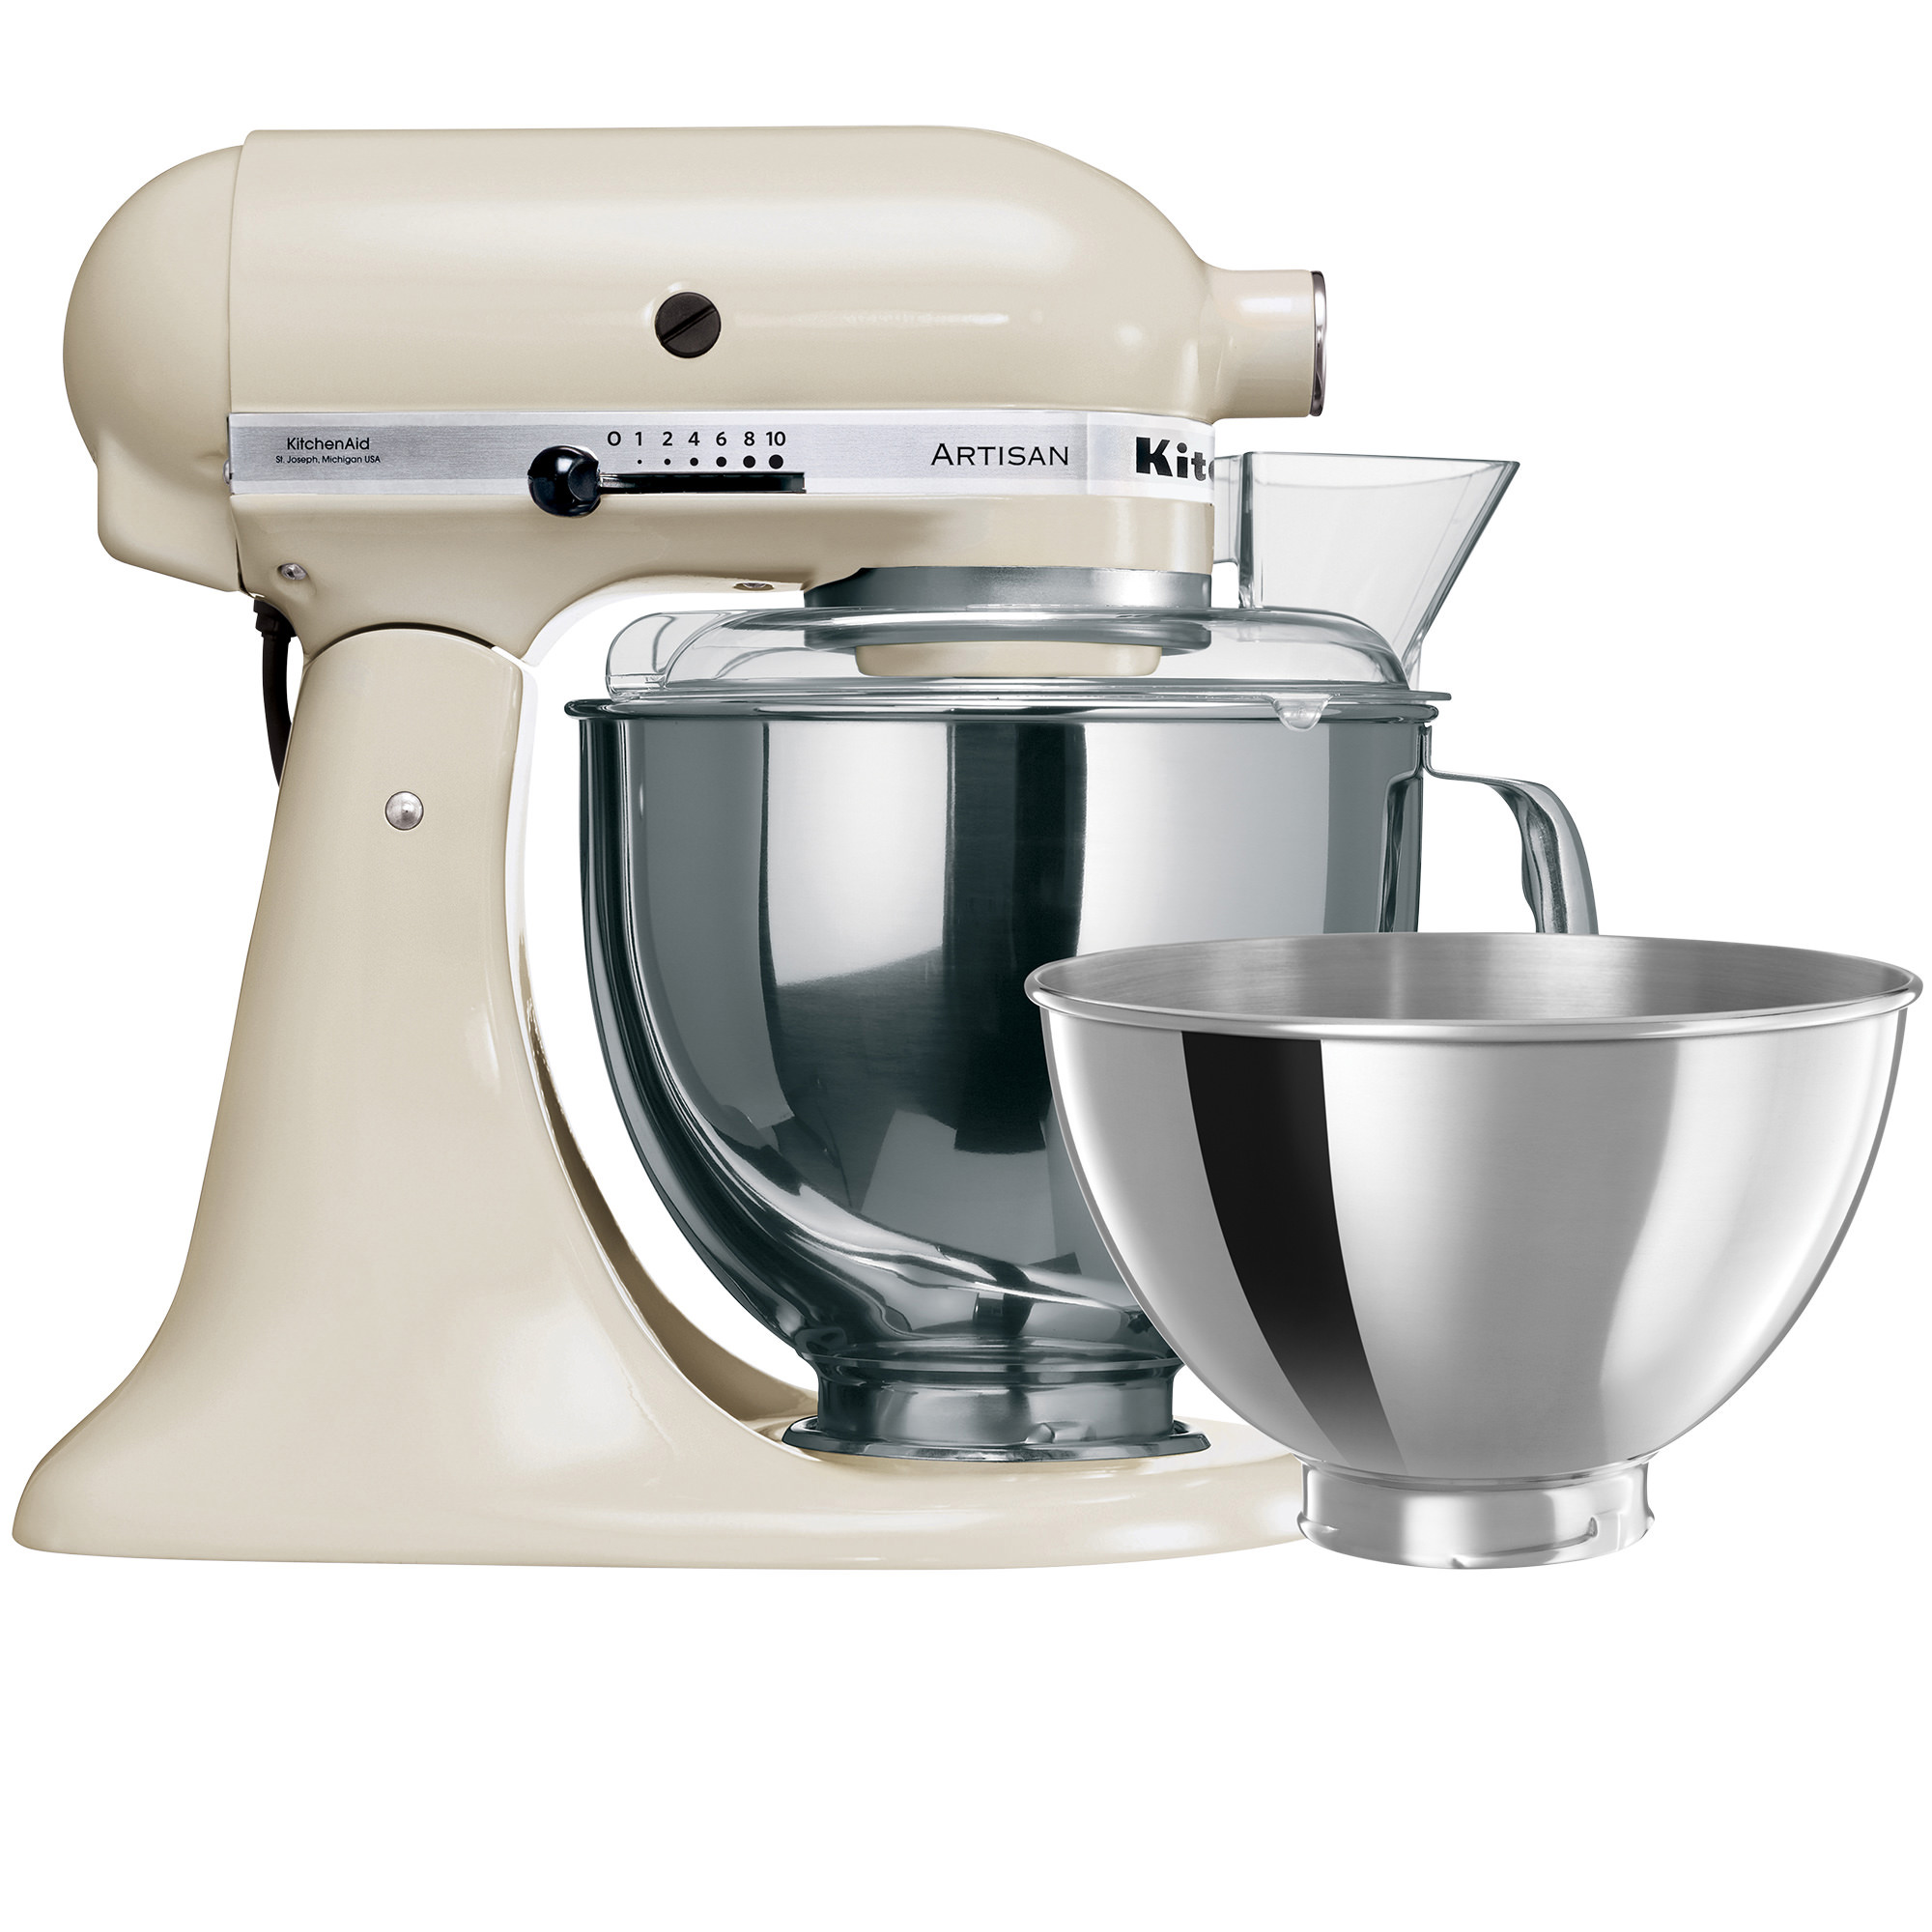 KitchenAid Artisan KSM160 Stand Mixer Almond Cream